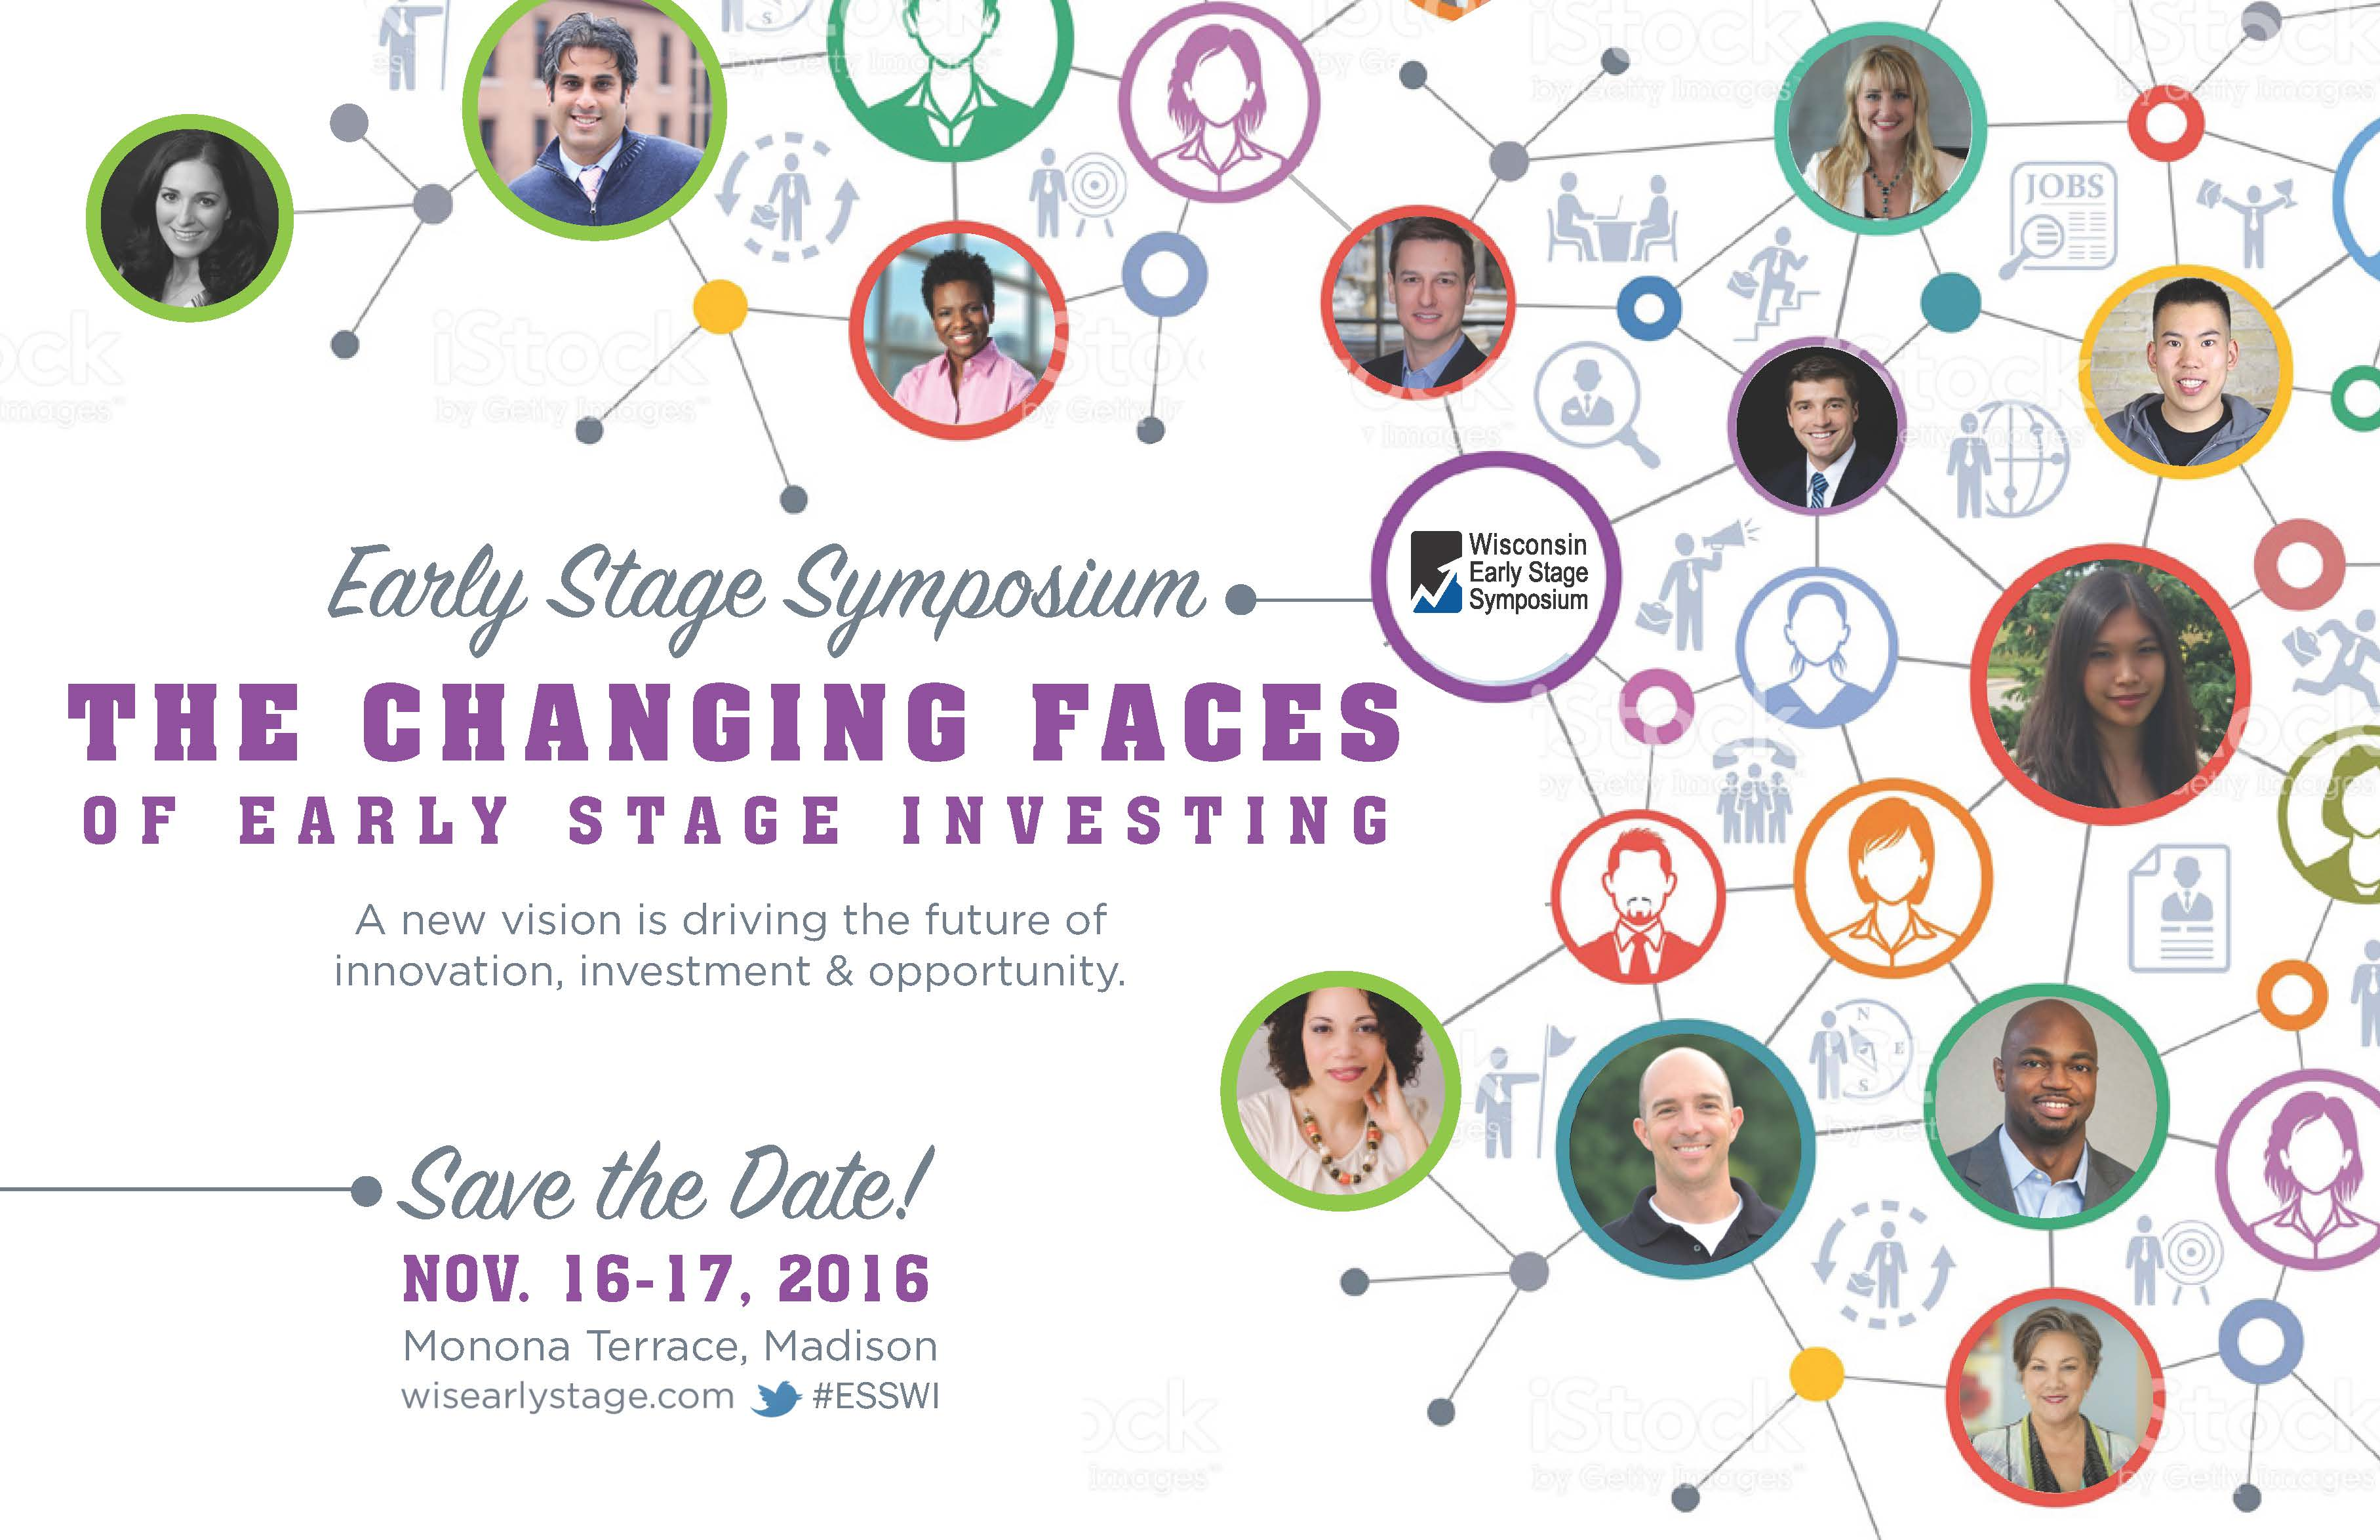 2016 Wisconsin Early Stage Symposium